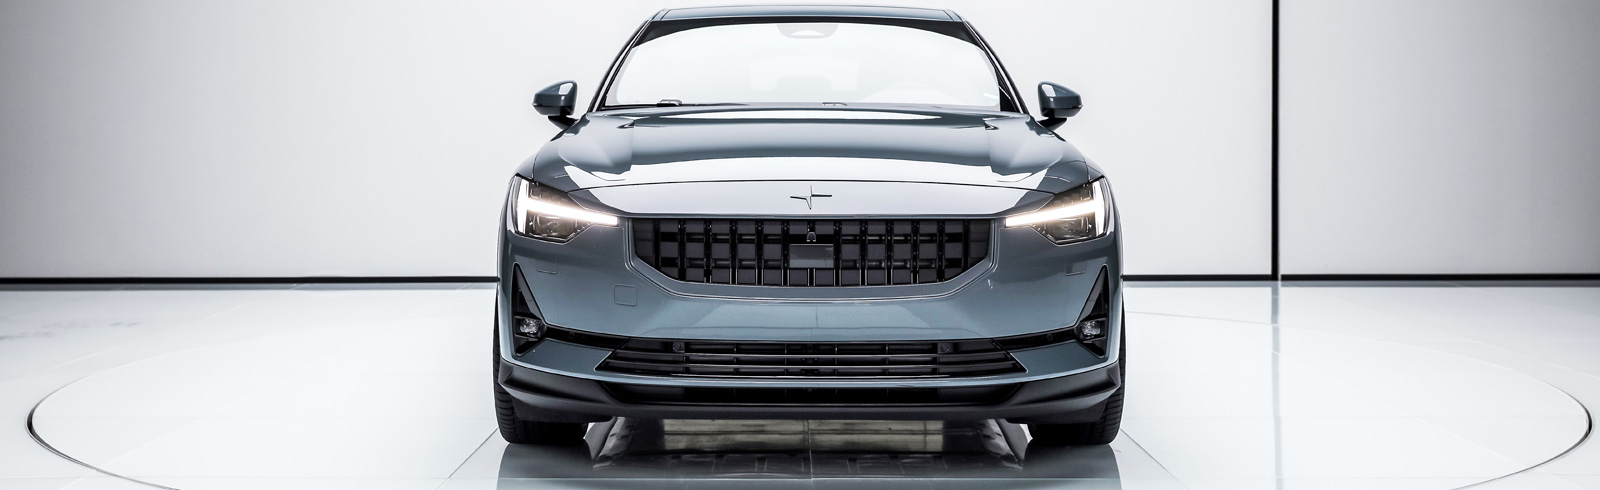 Polestar 2 debuts in China, local production is planned for early 2020